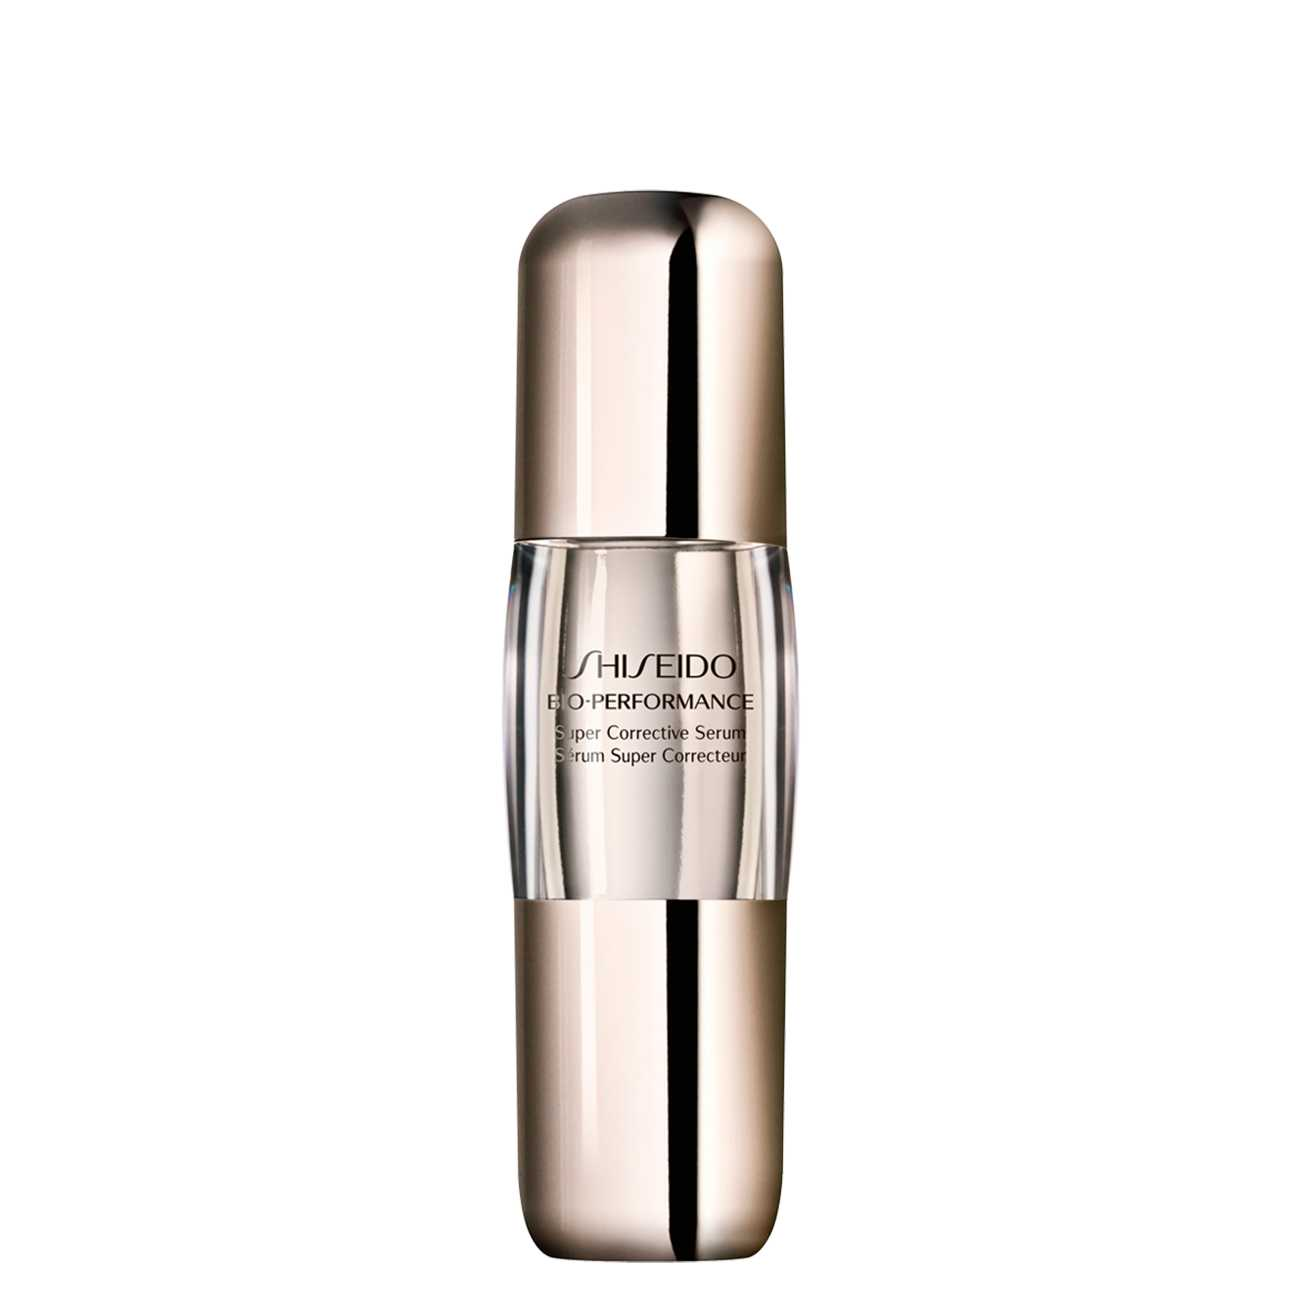 Bio-Performance 50 Ml Shiseido imagine 2021 bestvalue.eu